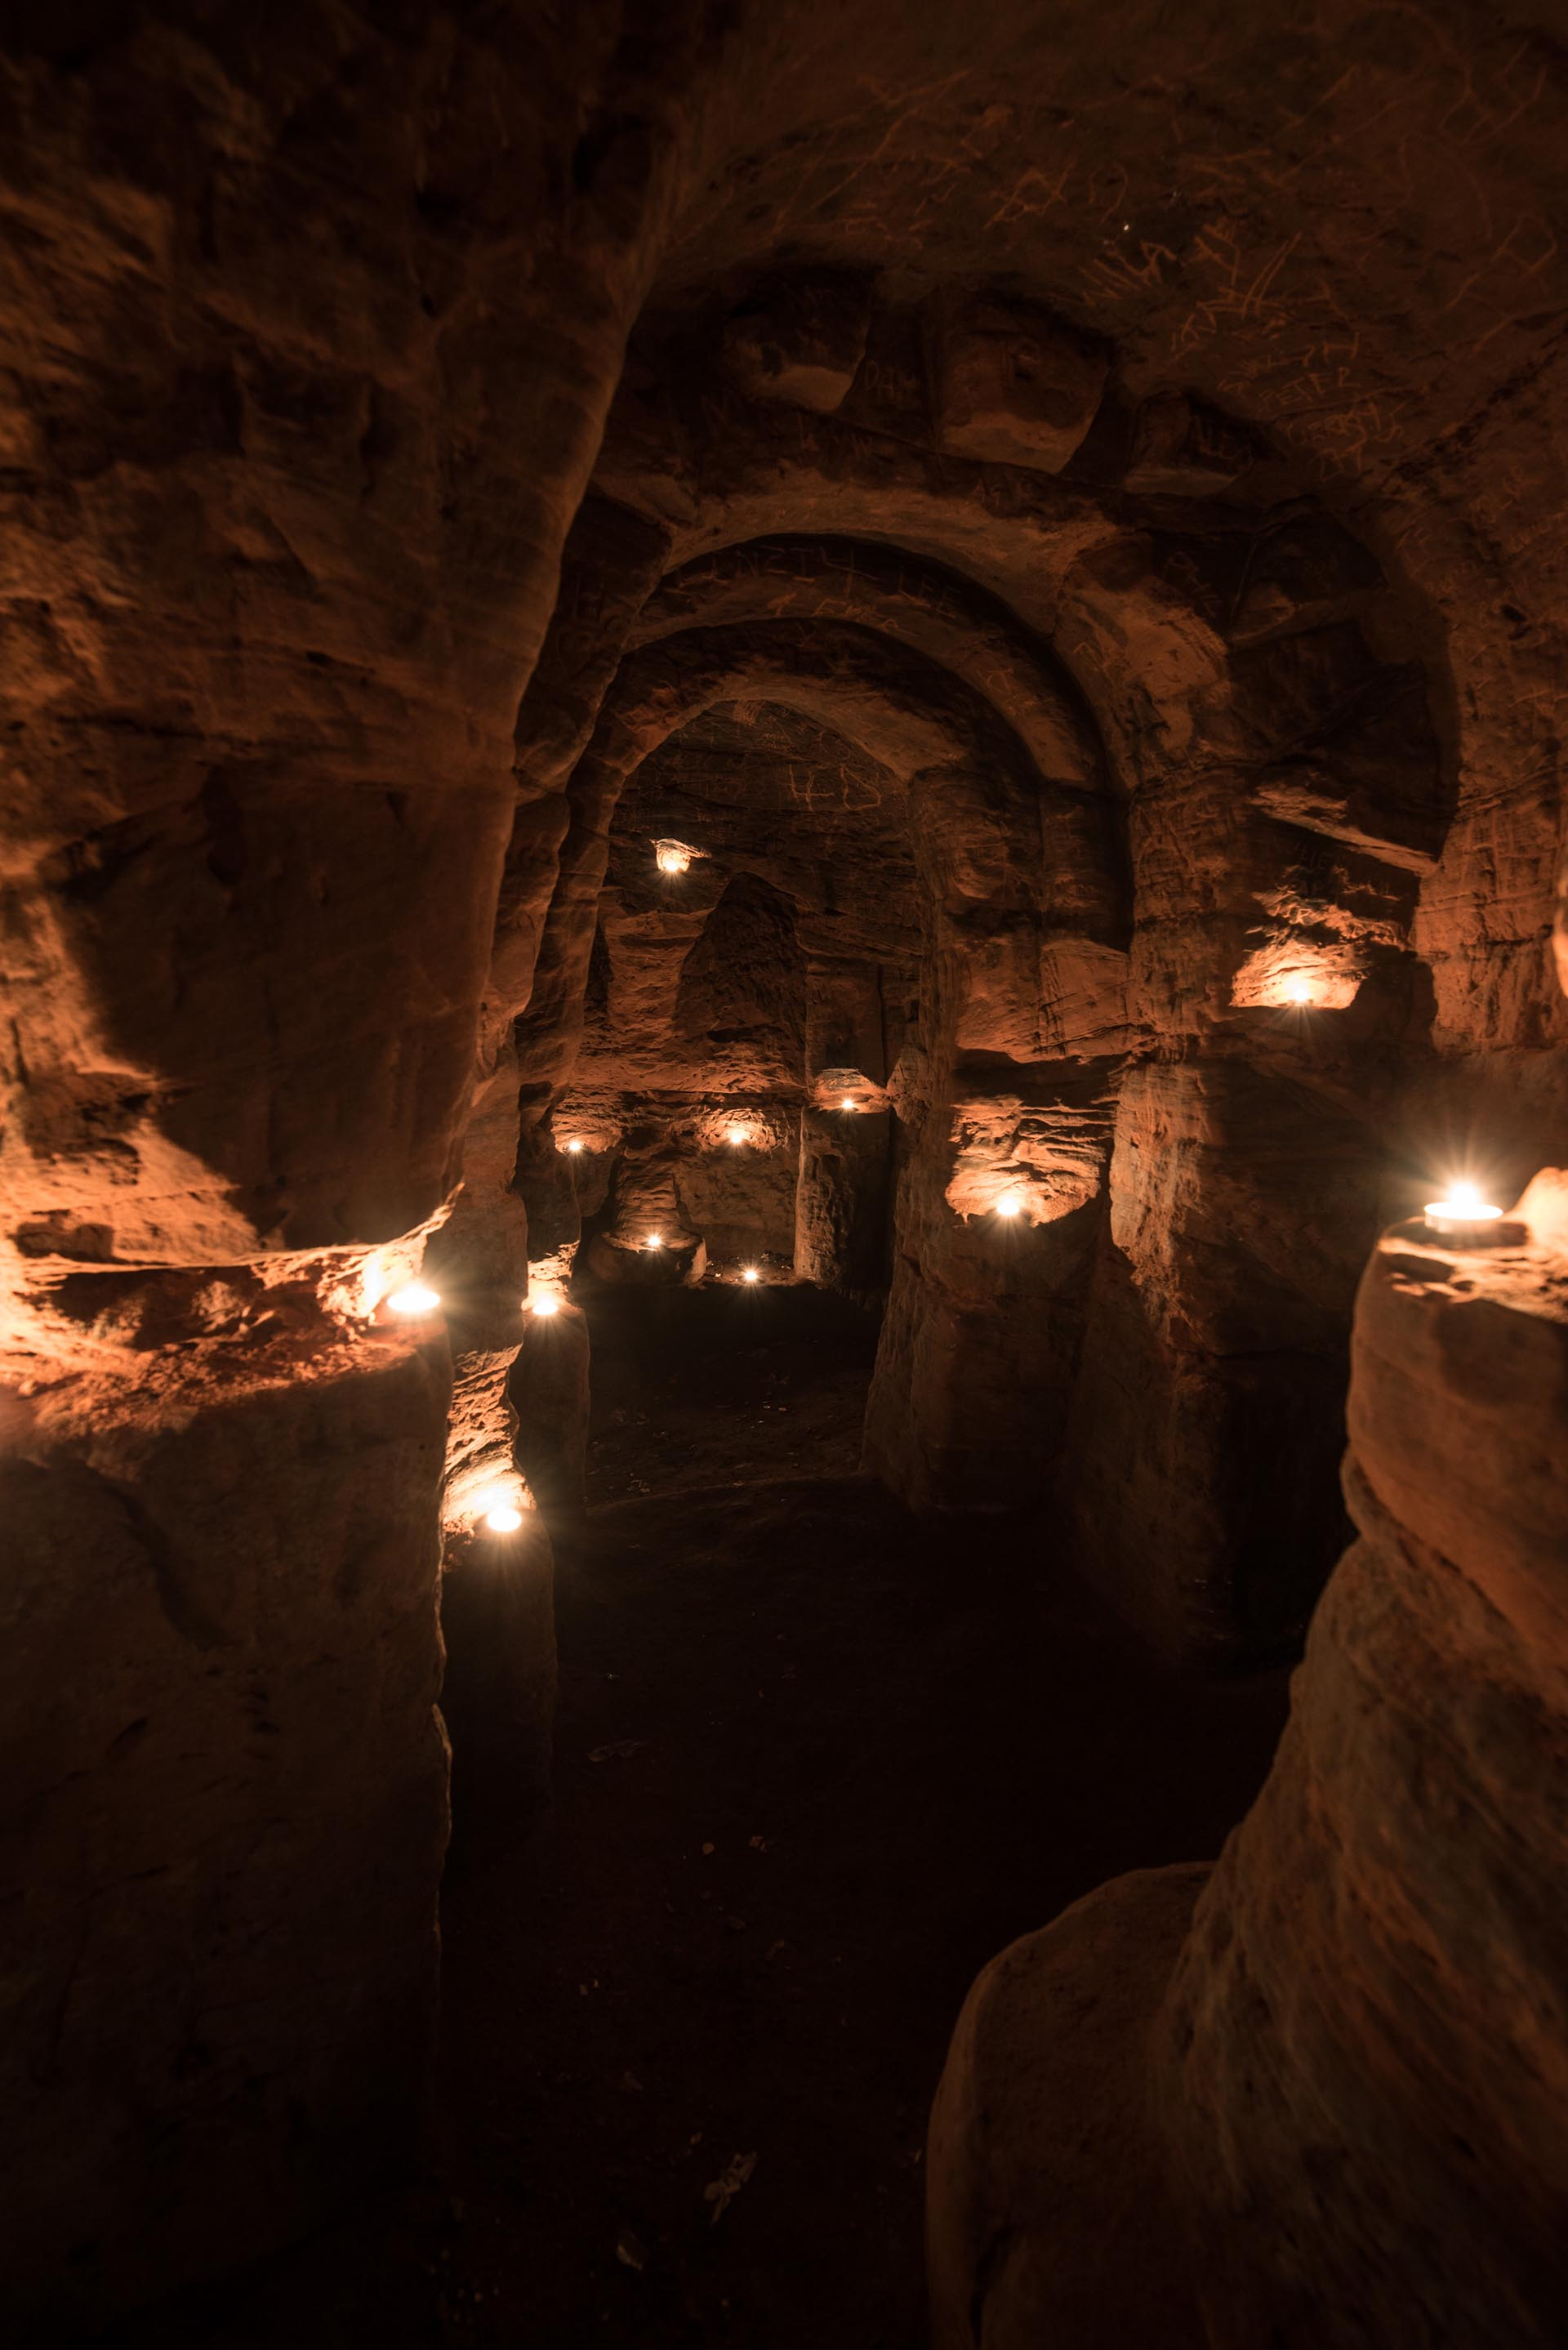 Los pasillos de la caverna templaria están llenos de velas que hacen más lúgubre el aspecto del lugar de culto (Michael Scott/Caters News/The Grosby Group)